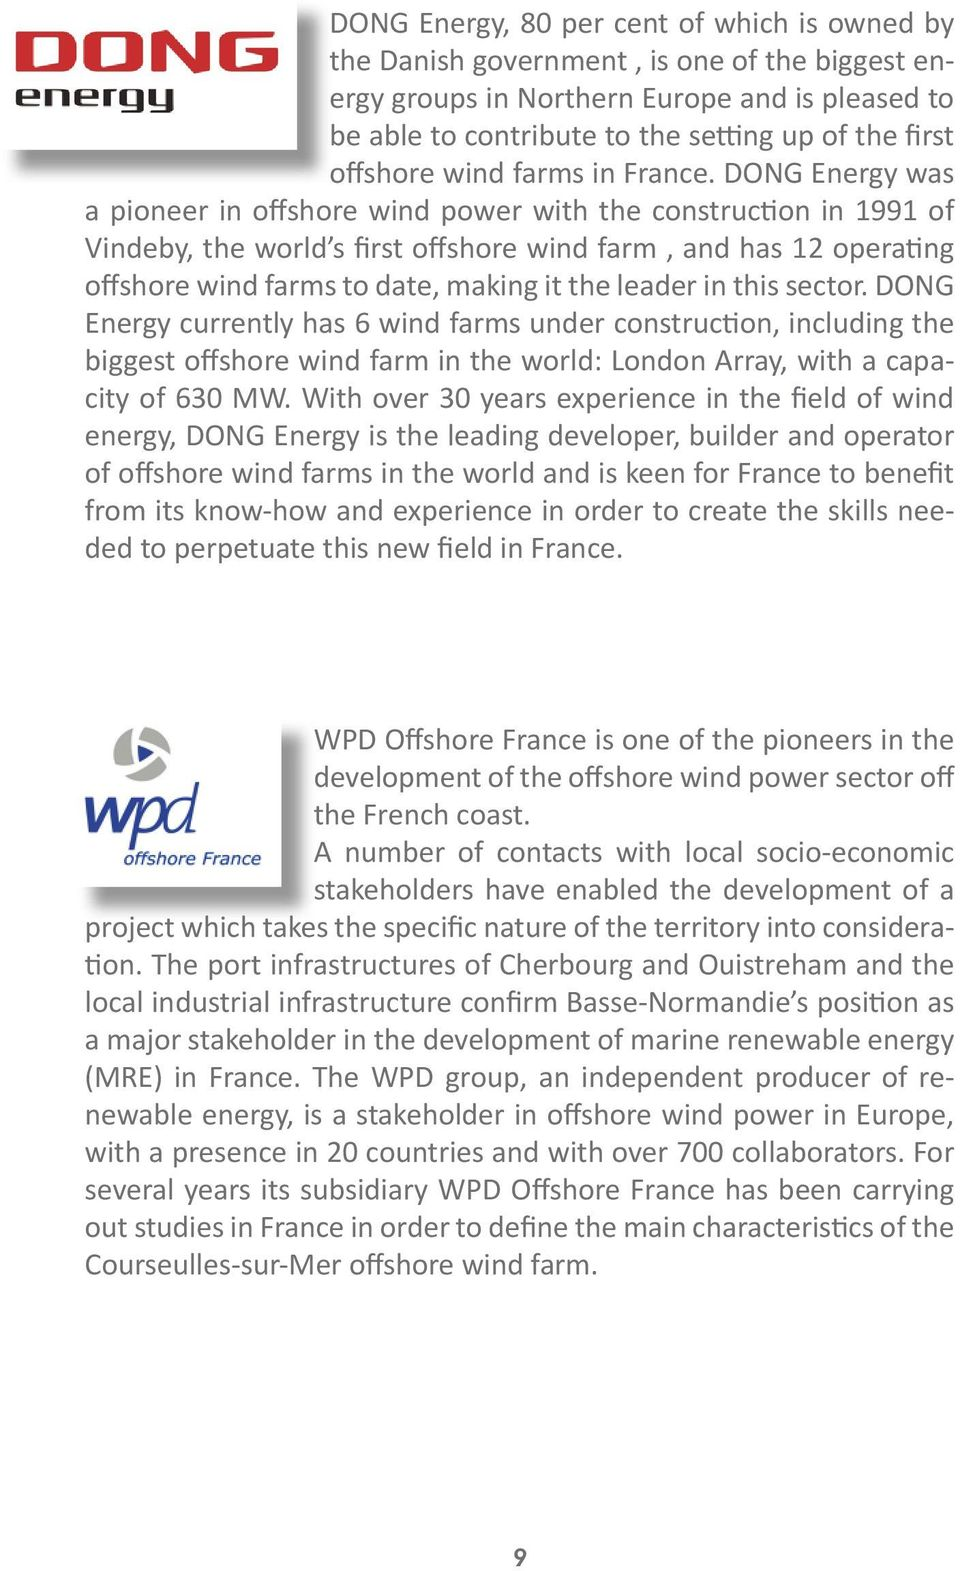 DONG Energy was a pioneer in offshore wind power with the construction in 1991 of Vindeby, the world s first offshore wind farm, and has 12 operating offshore wind farms to date, making it the leader